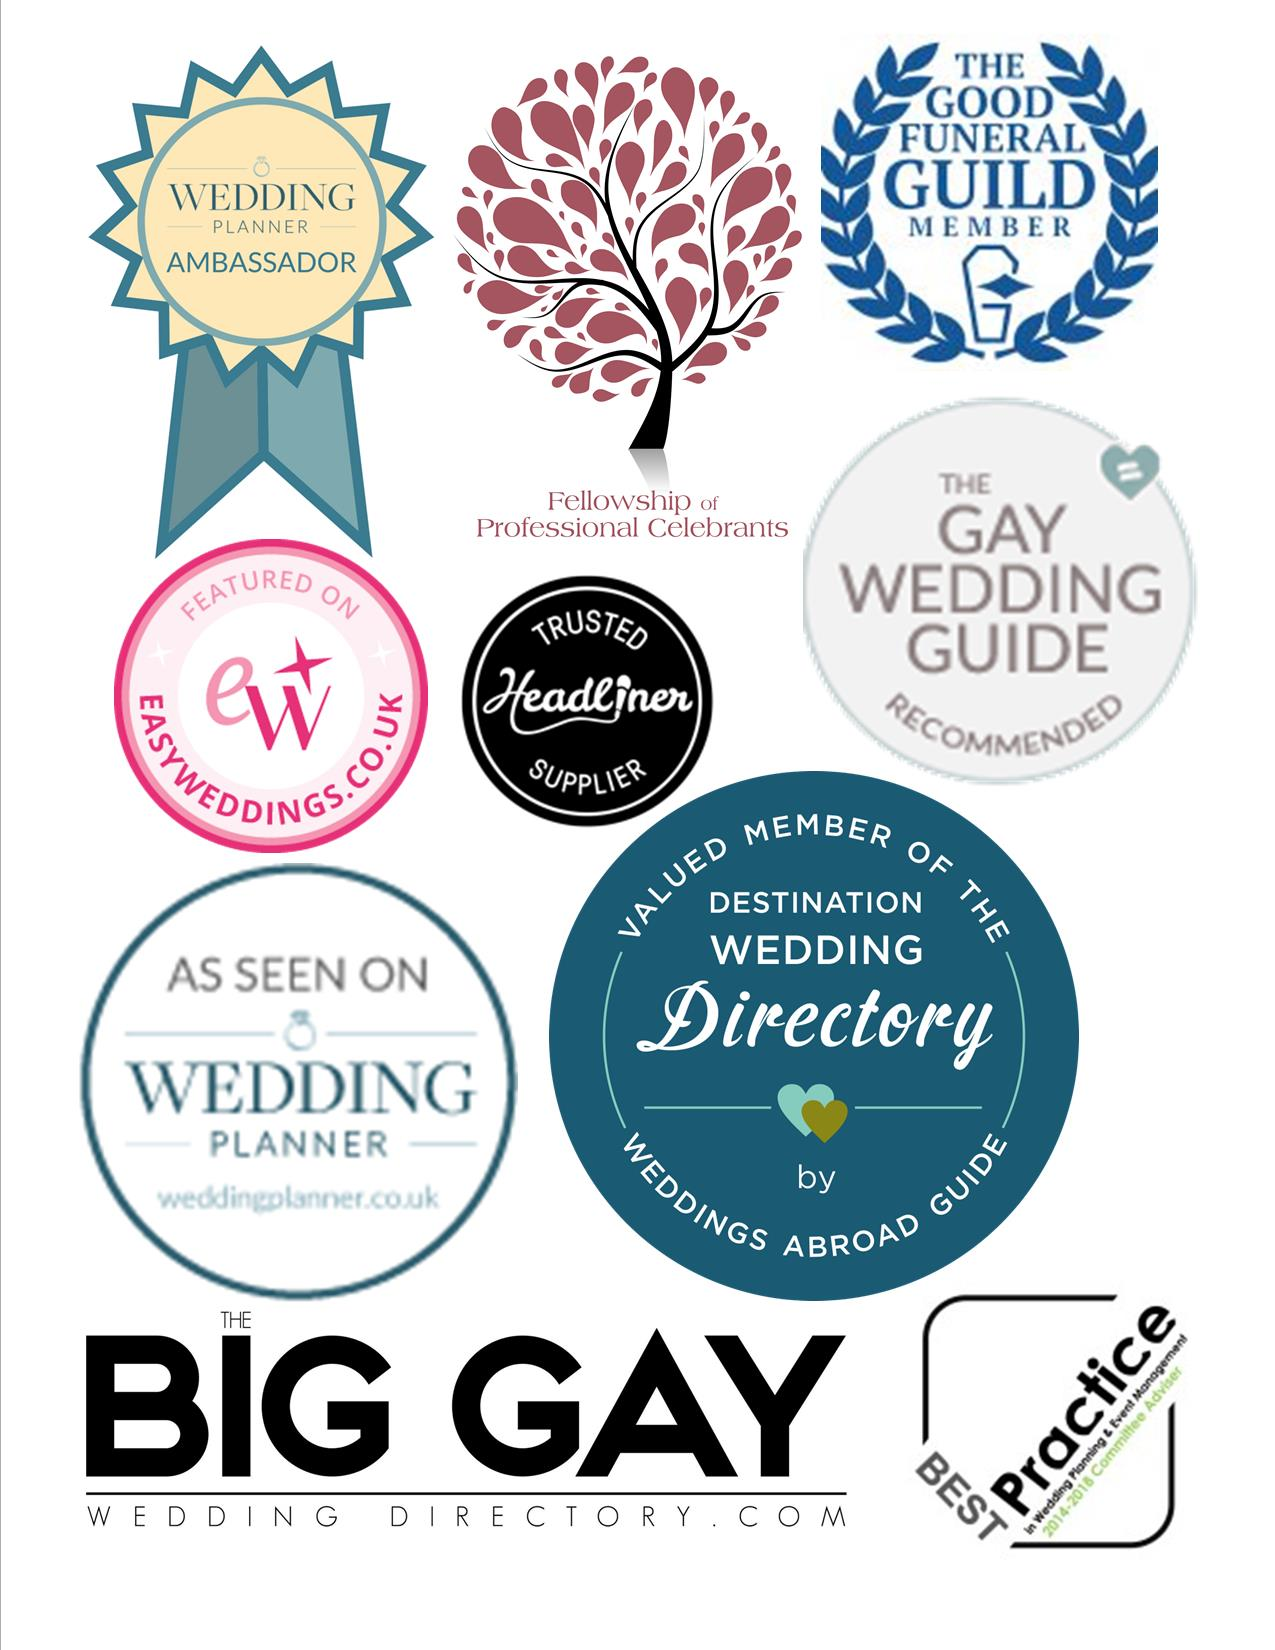 Samantha Kelsie is proud to be in partnership with the top UK and Destination Wedding Directories